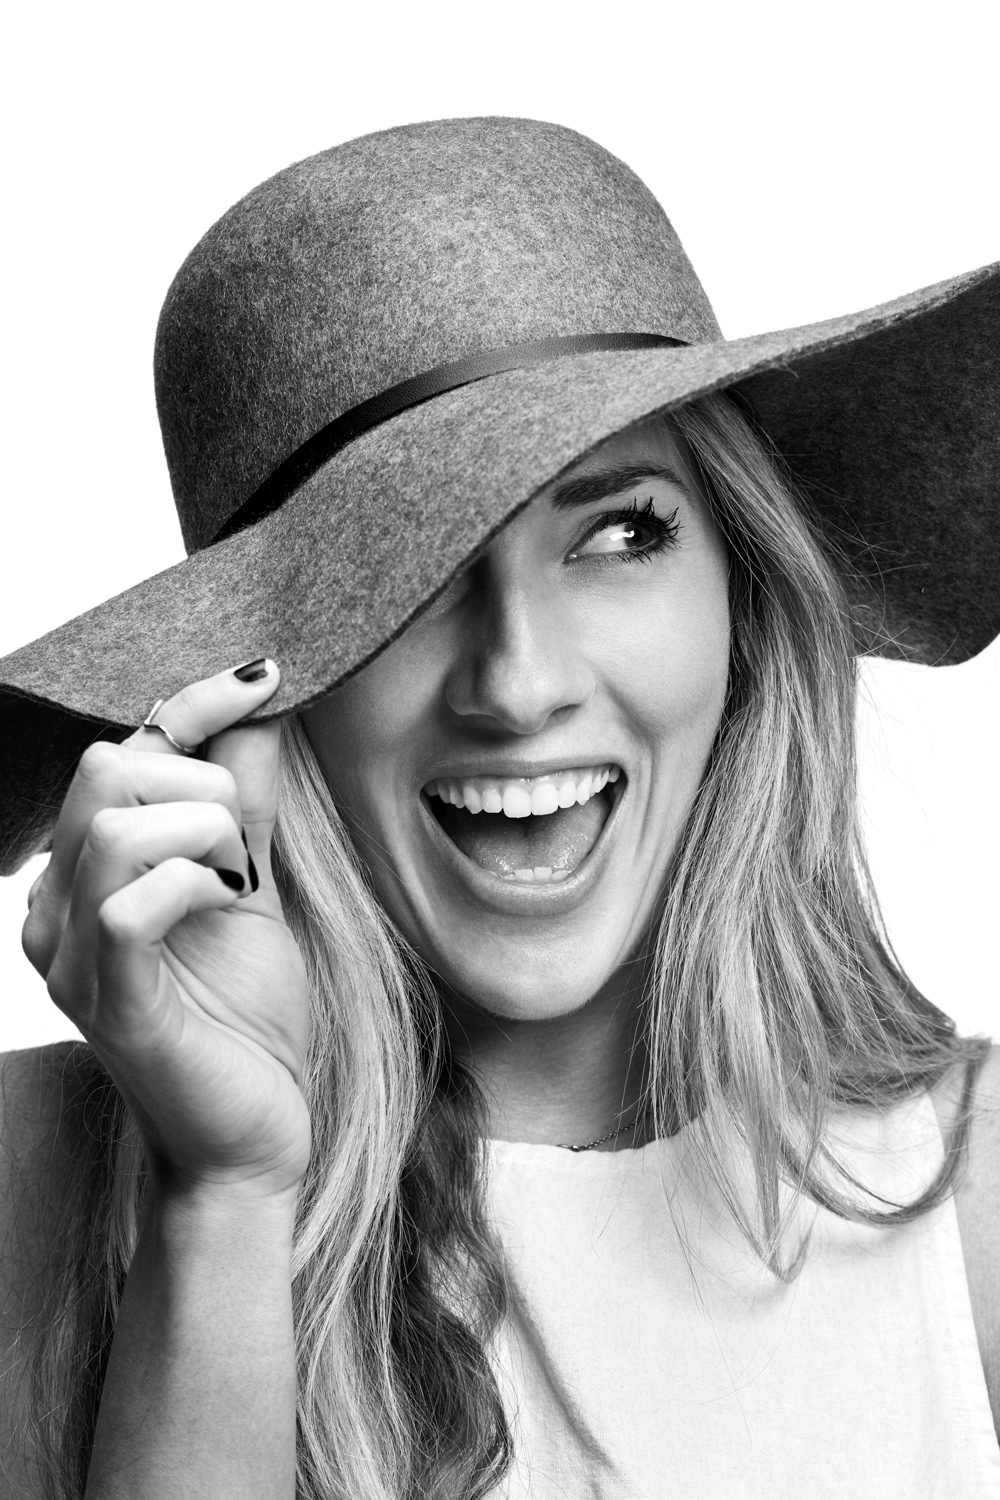 Woman on white background, studio photography, black and white portraits, girl laughing, girl wearing hat